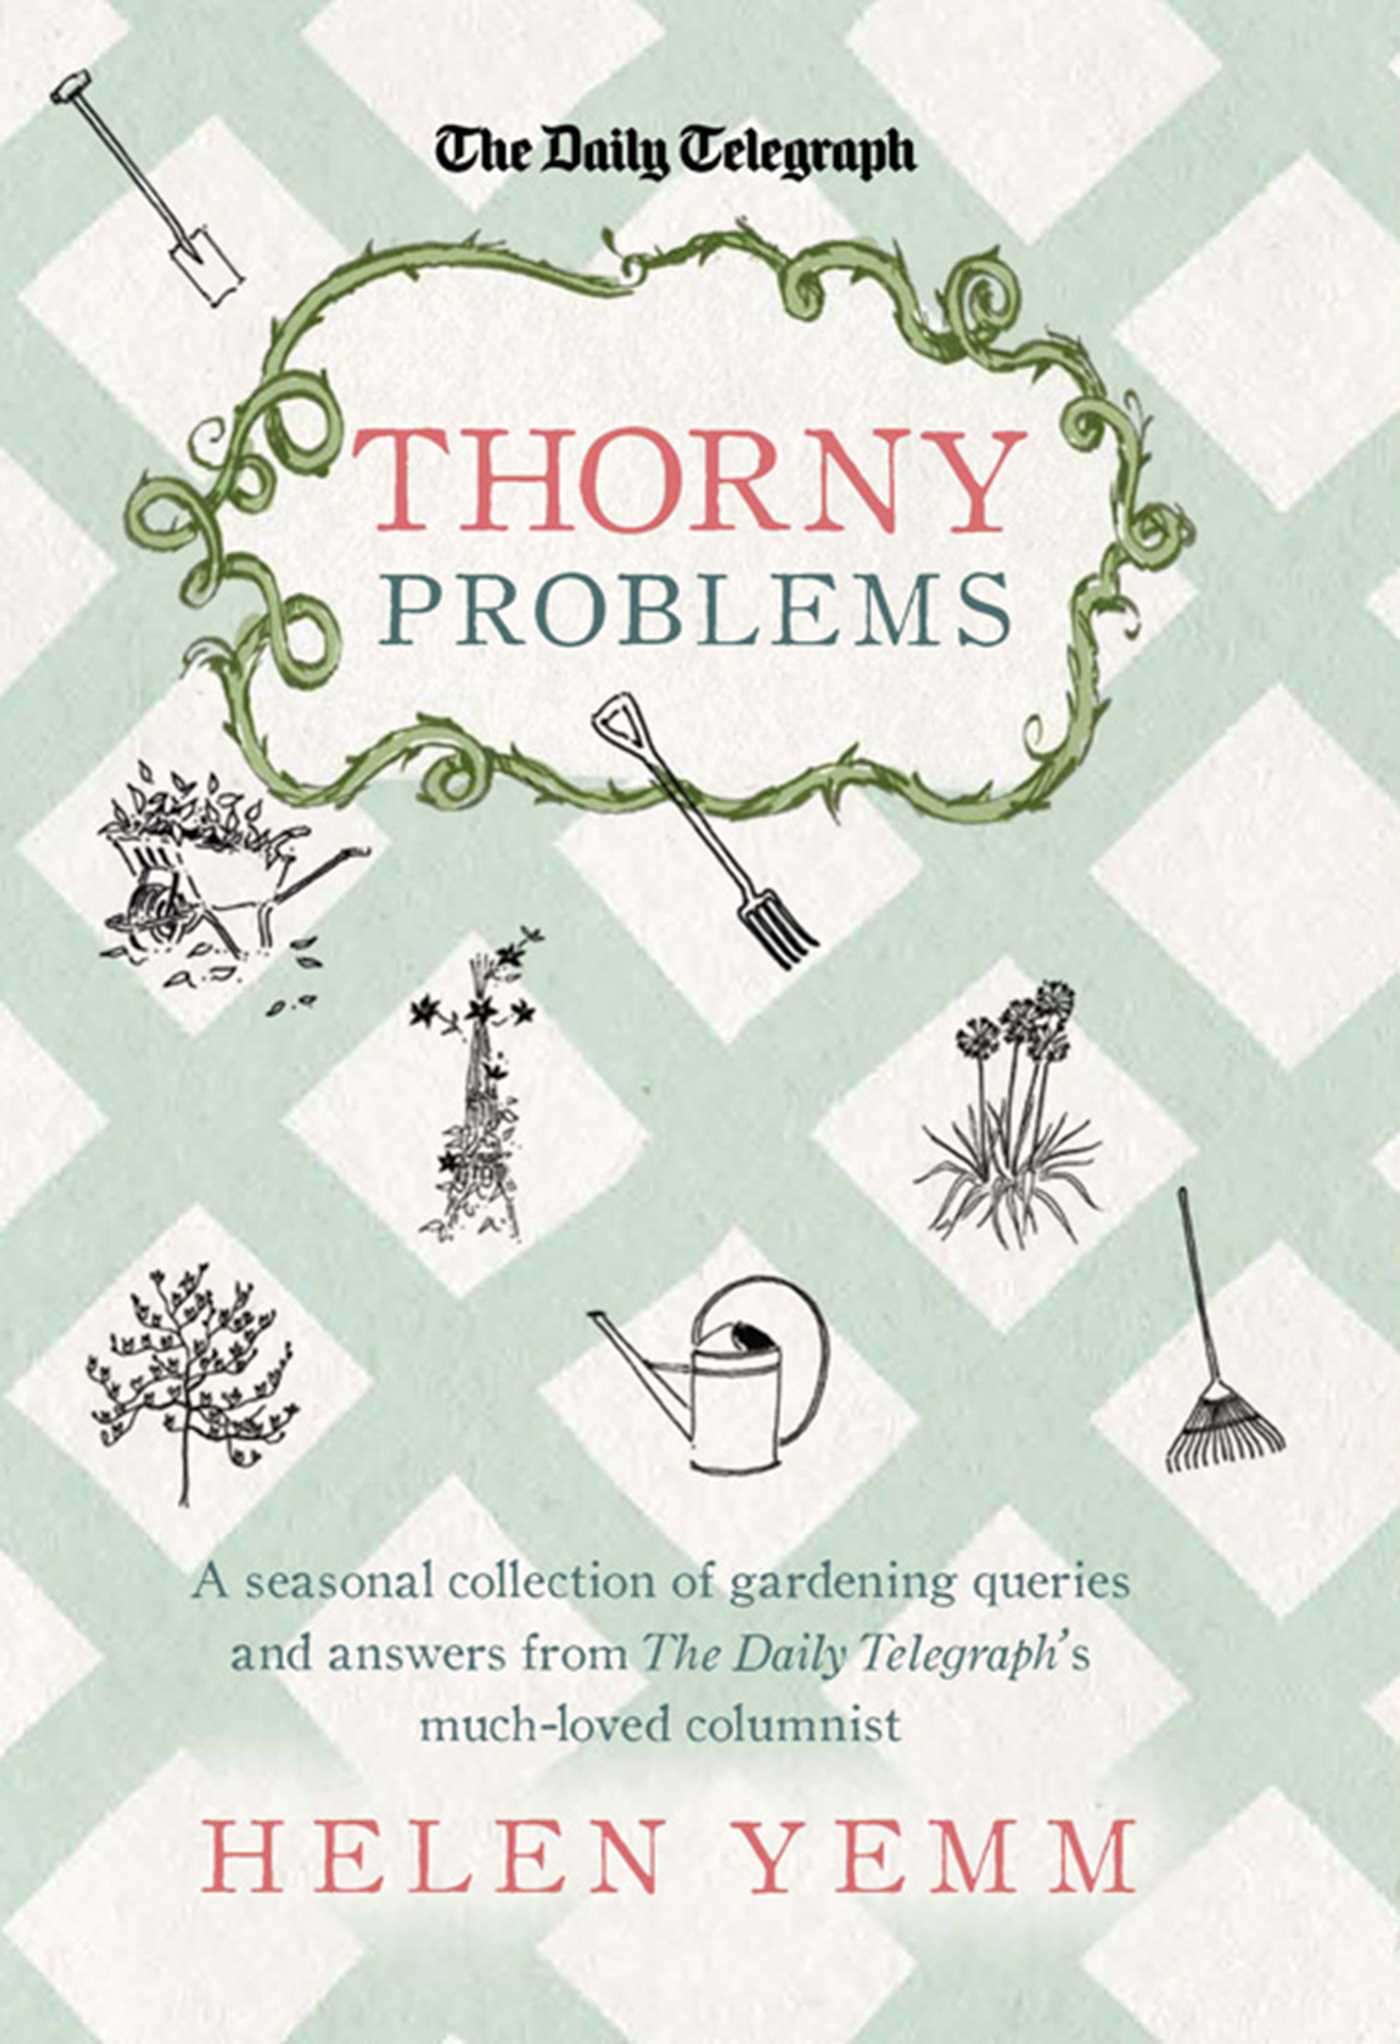 Thorny problems 9780857202727 hr